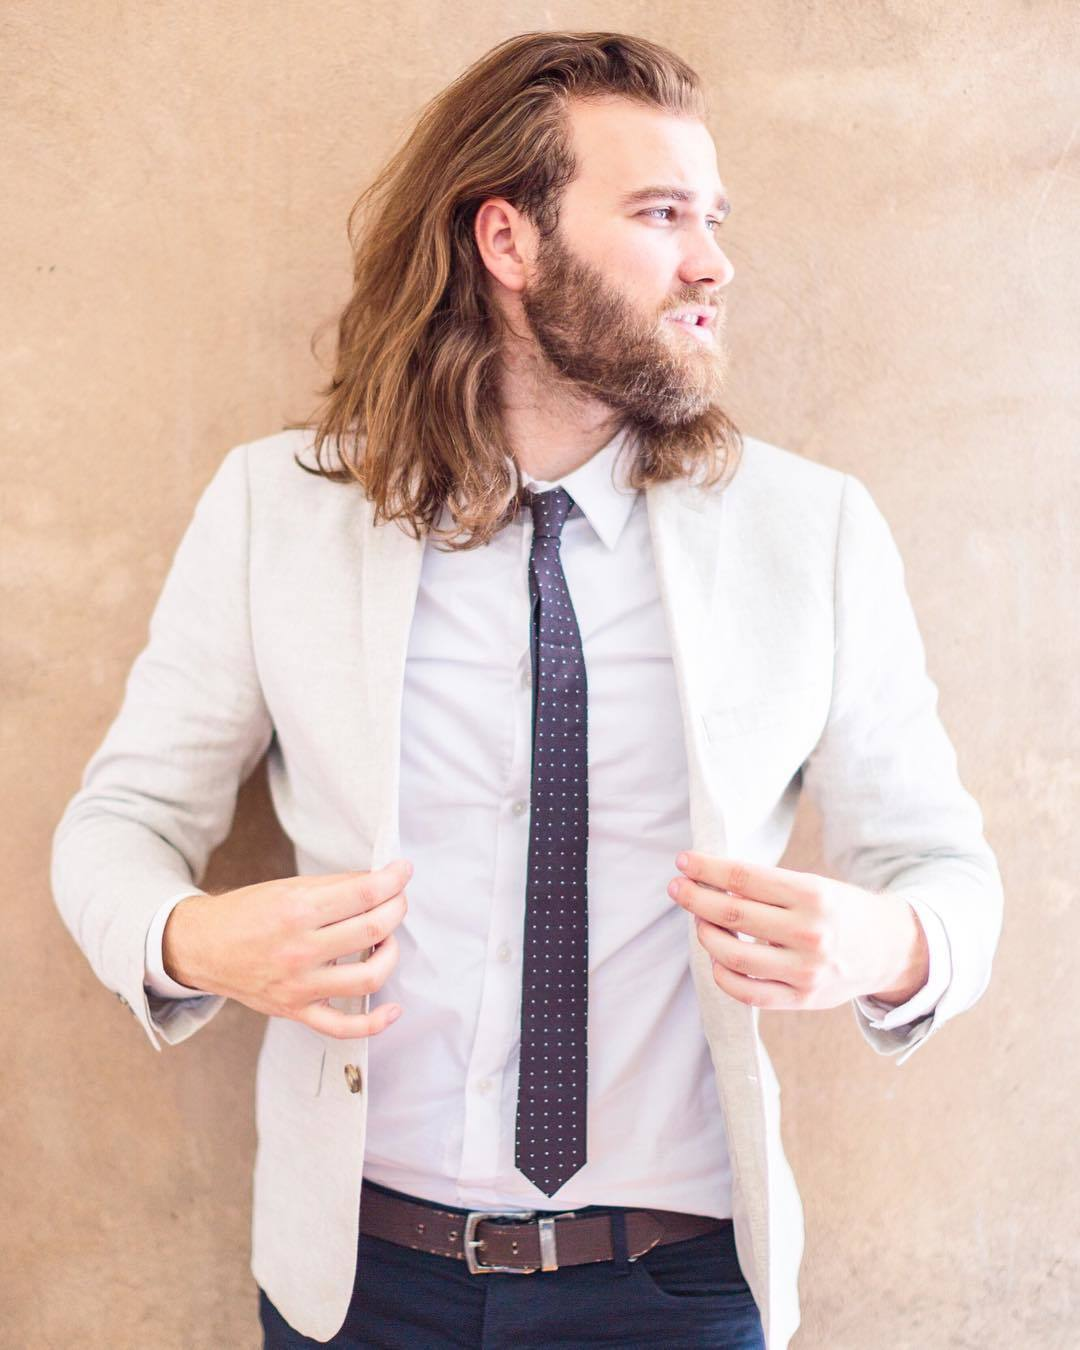 Viking Hairstyles: Man with rugged beard with shoulder length light brown wavy hair, wearing white top with black tie and white suit jacket outside